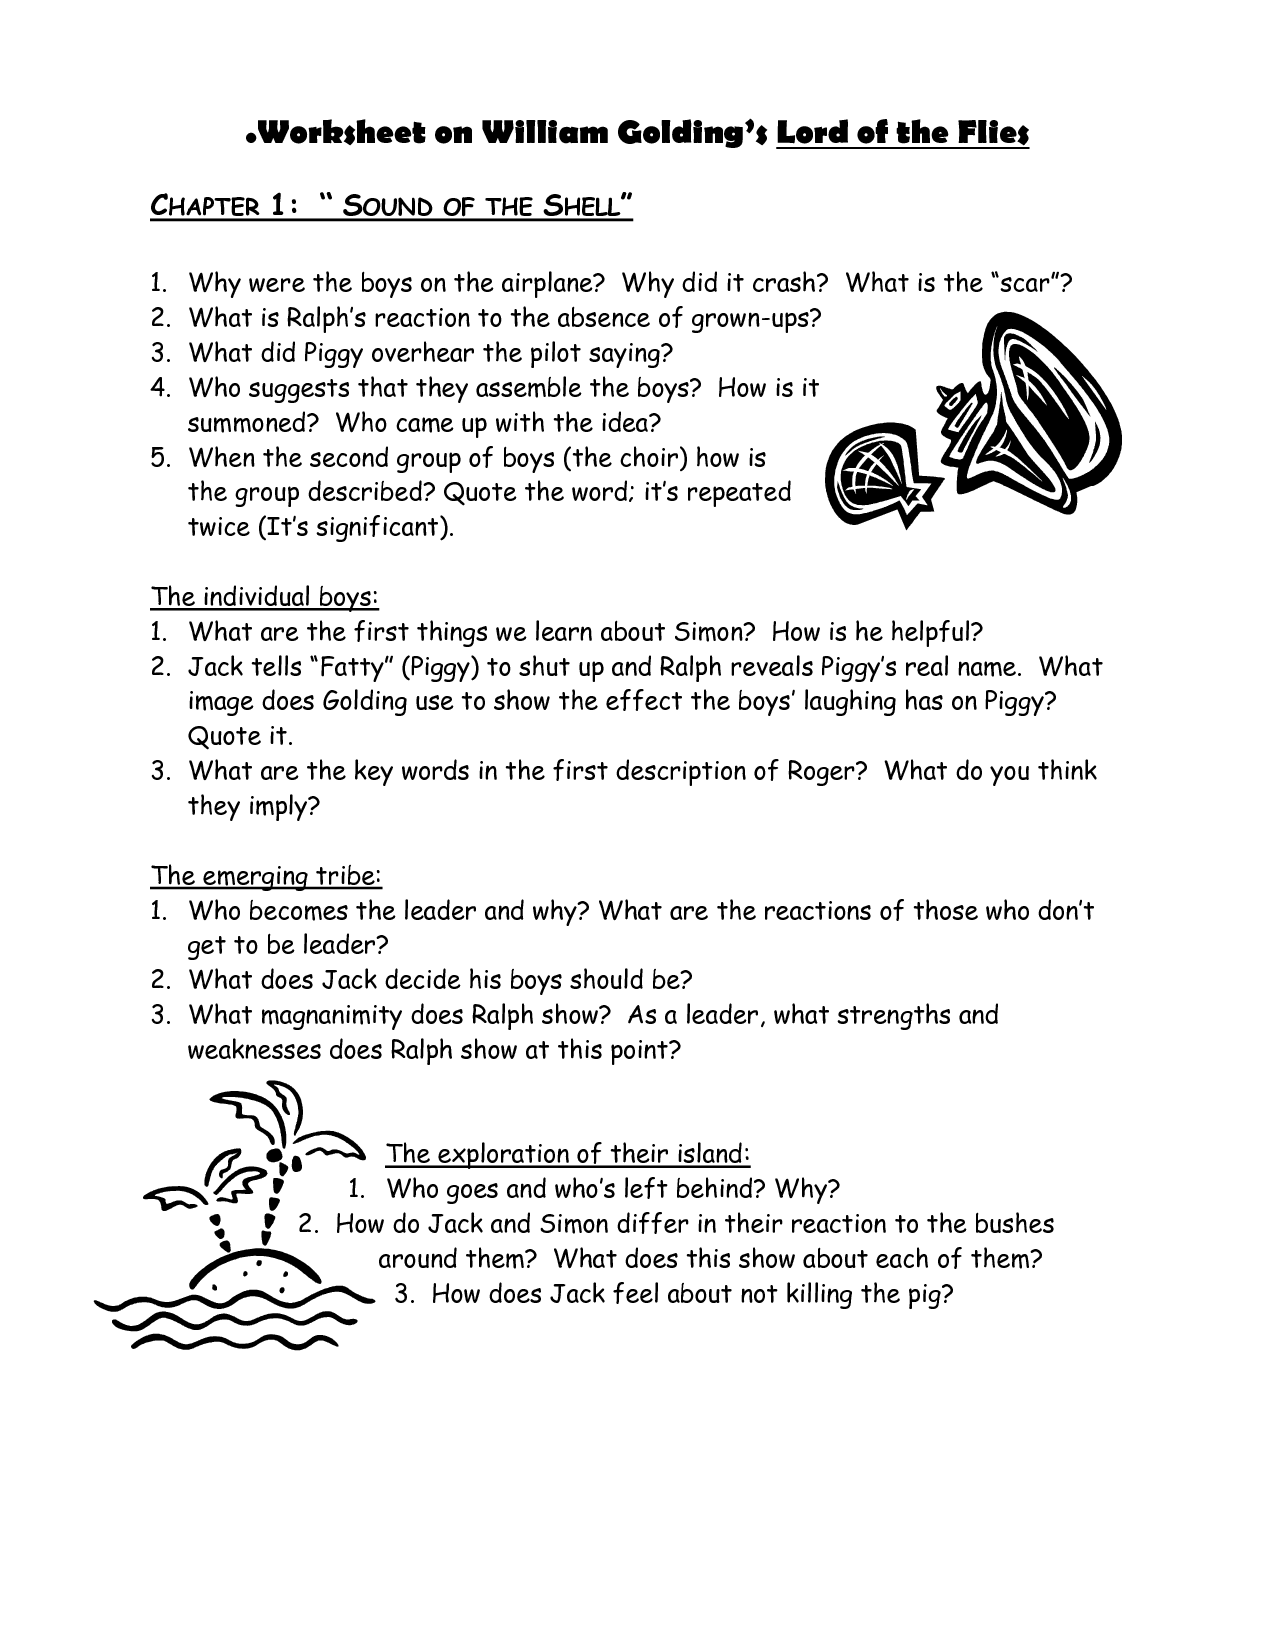 Lord Of The Flies Worksheets Templates and Worksheets – Lord of the Flies Worksheets